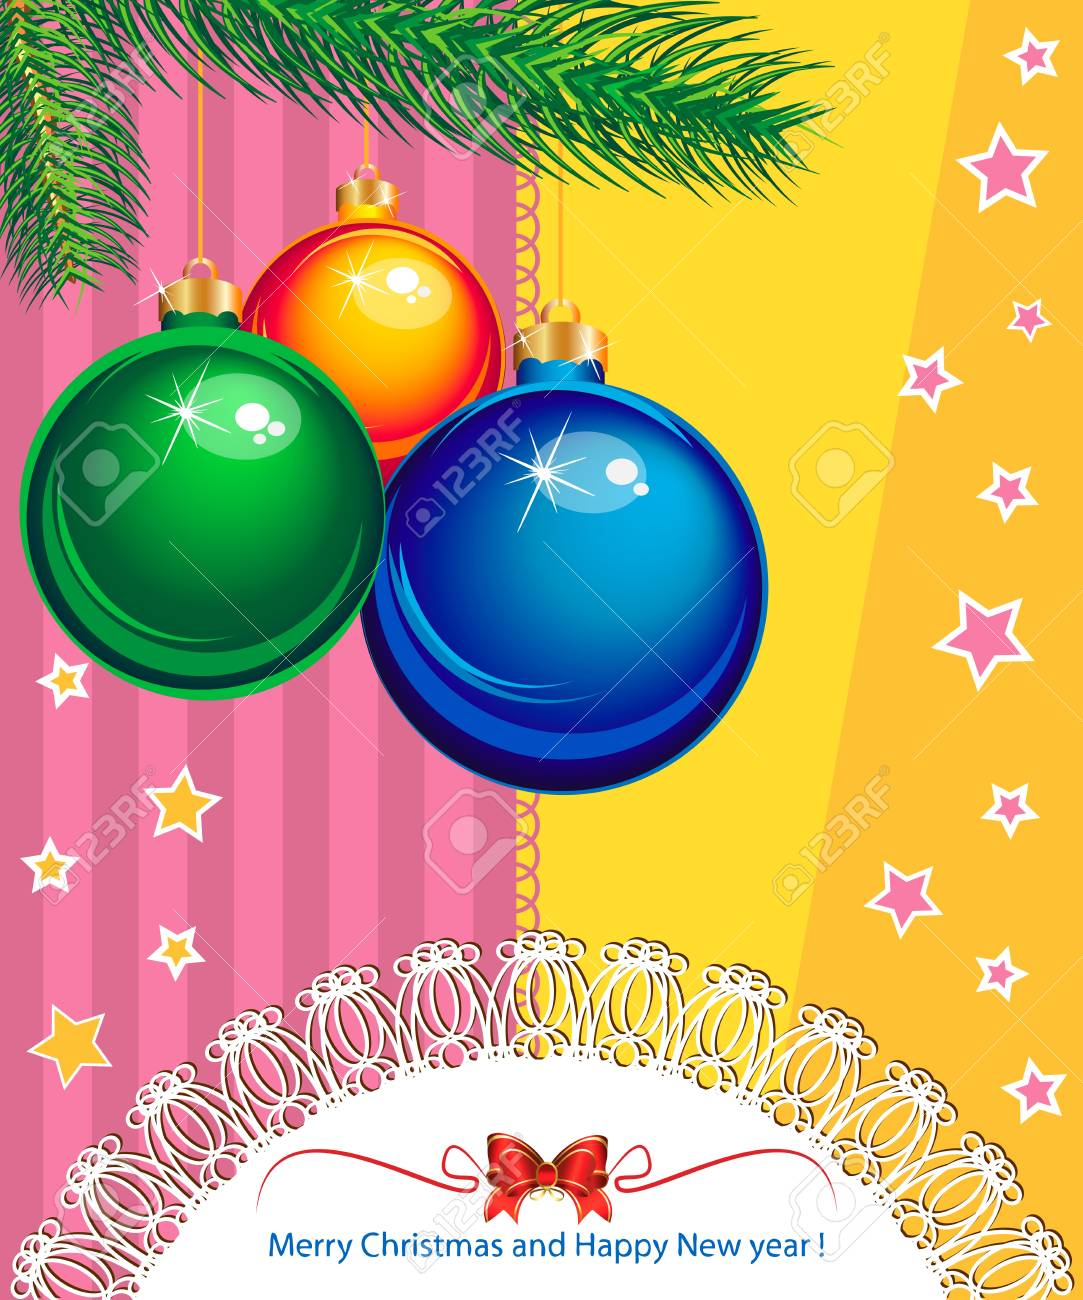 New Year and Christmas elegant suggestive background for greetings card Stock Vector - 16633658